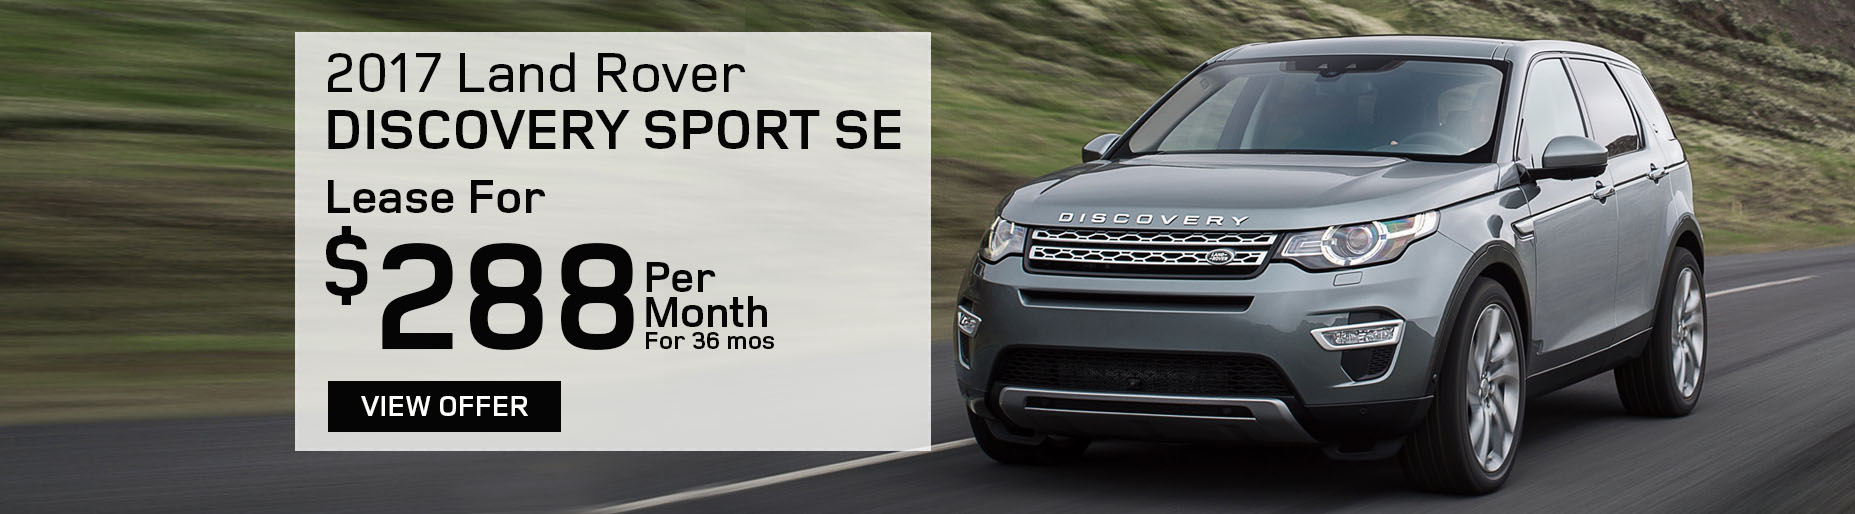 landrover evoque rover aa o land the clp range special lease fairfield milford ct